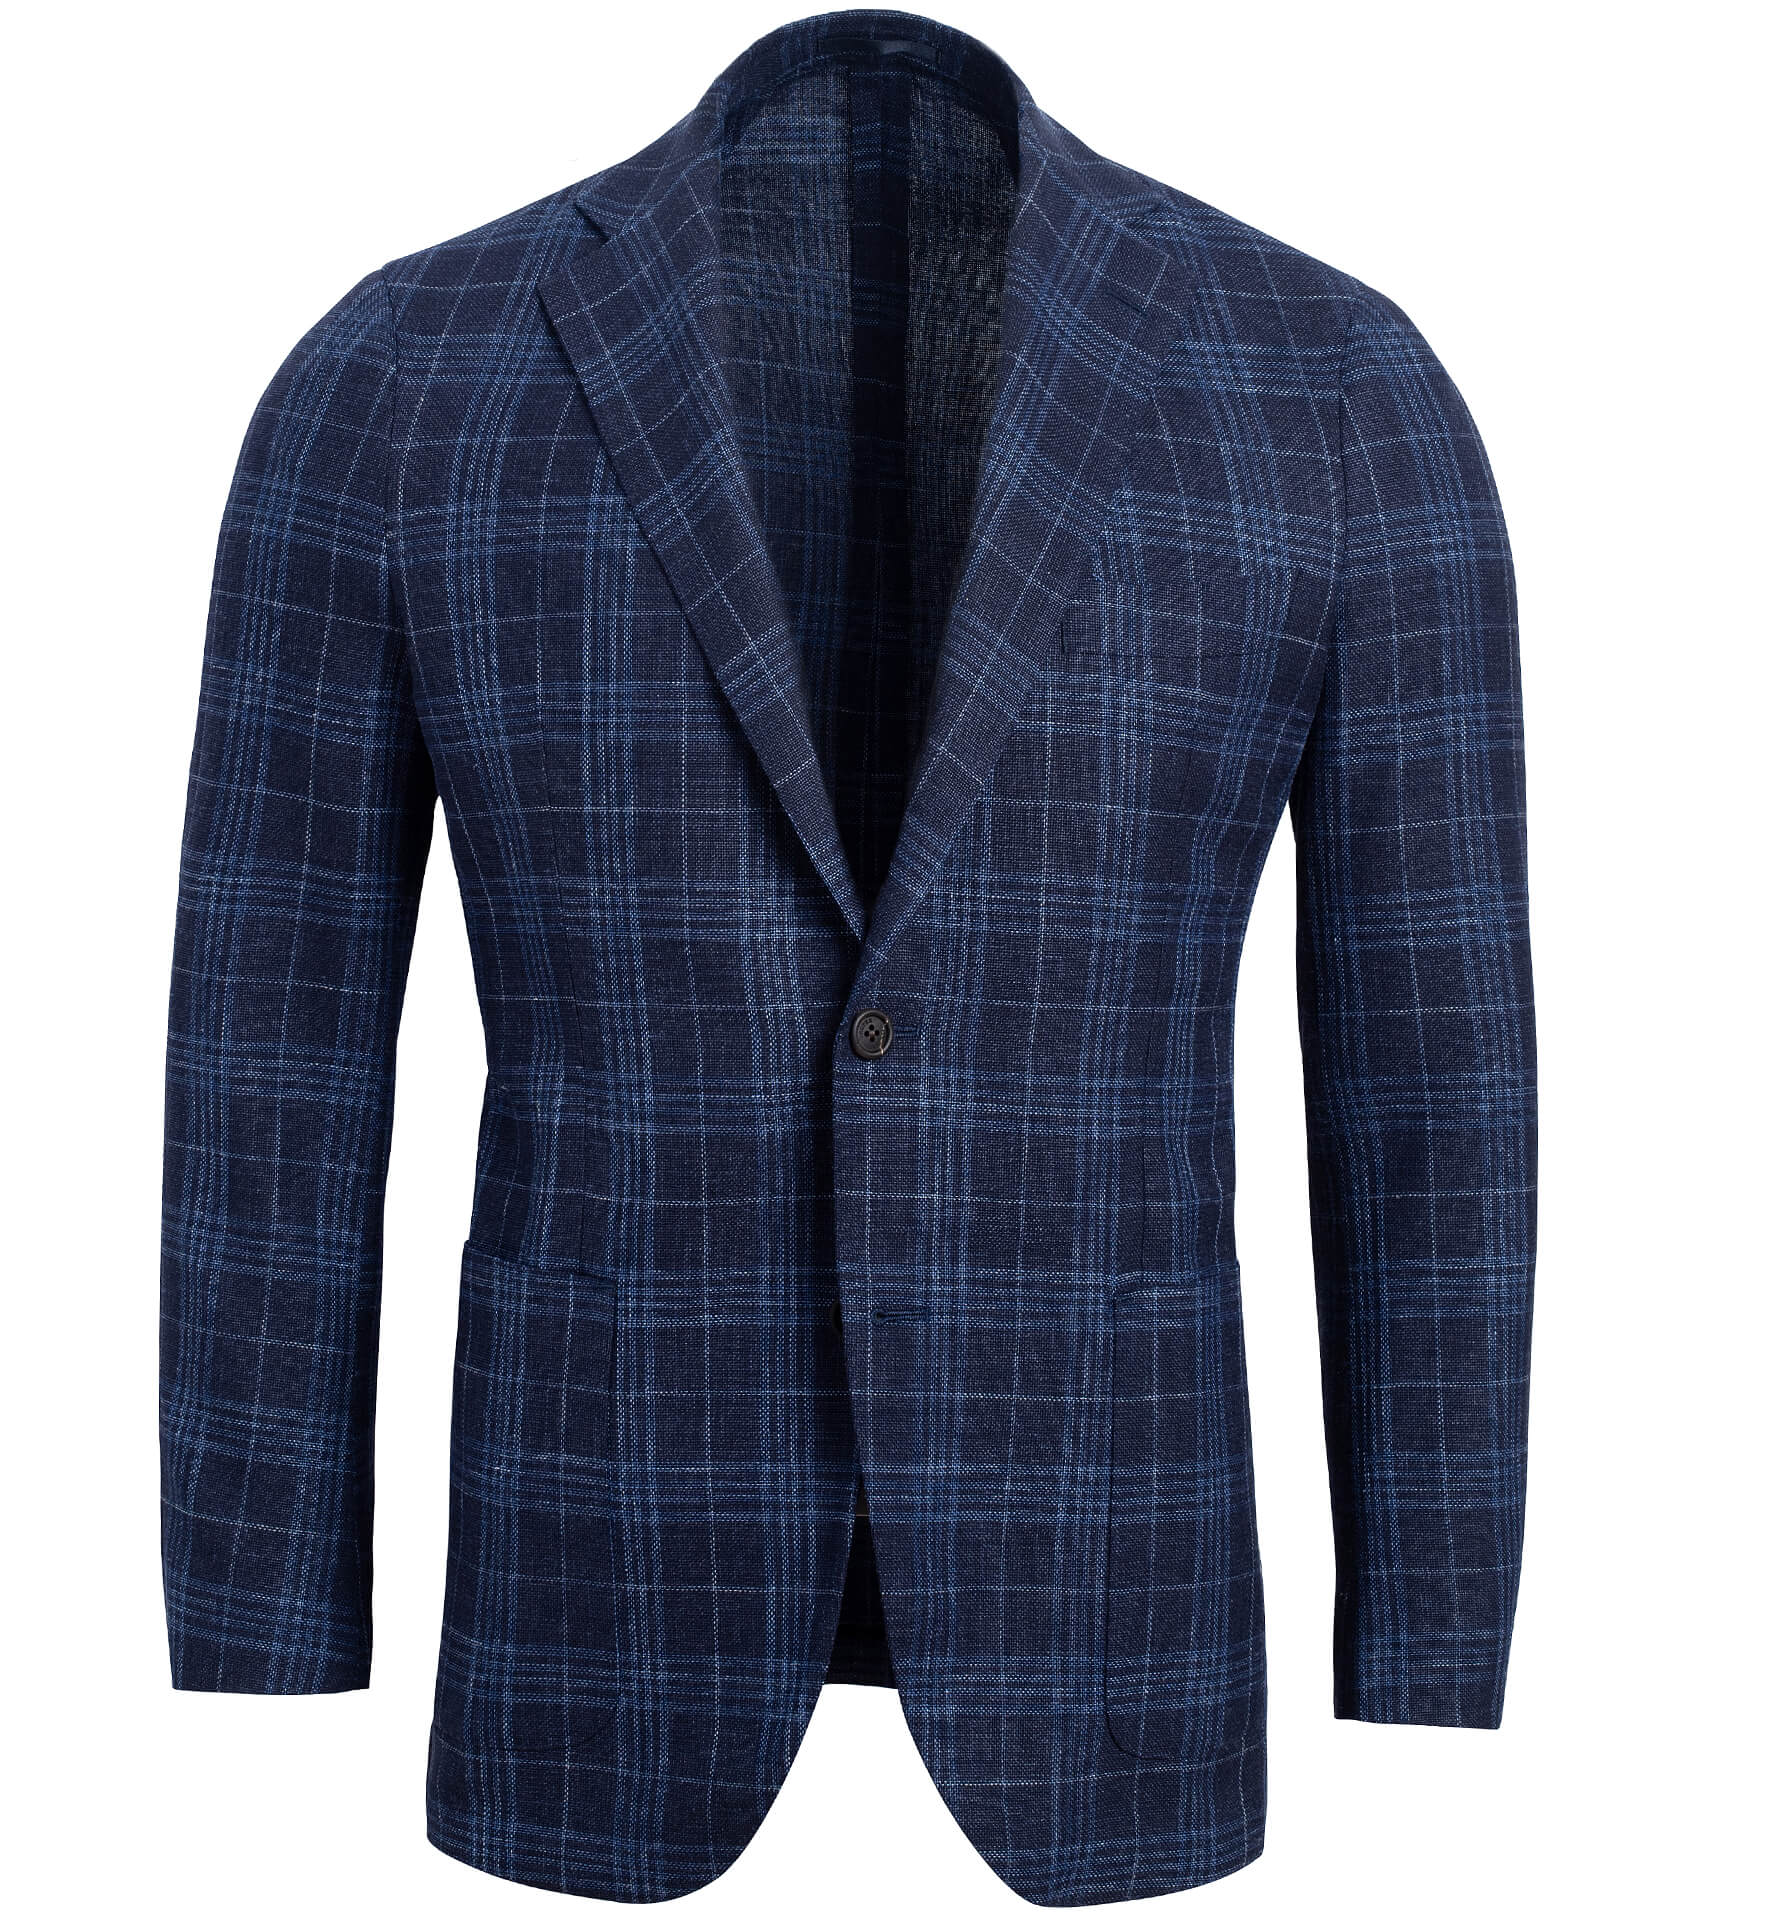 Zoom Image of Bedford Navy Plaid Summer Blend Jacket